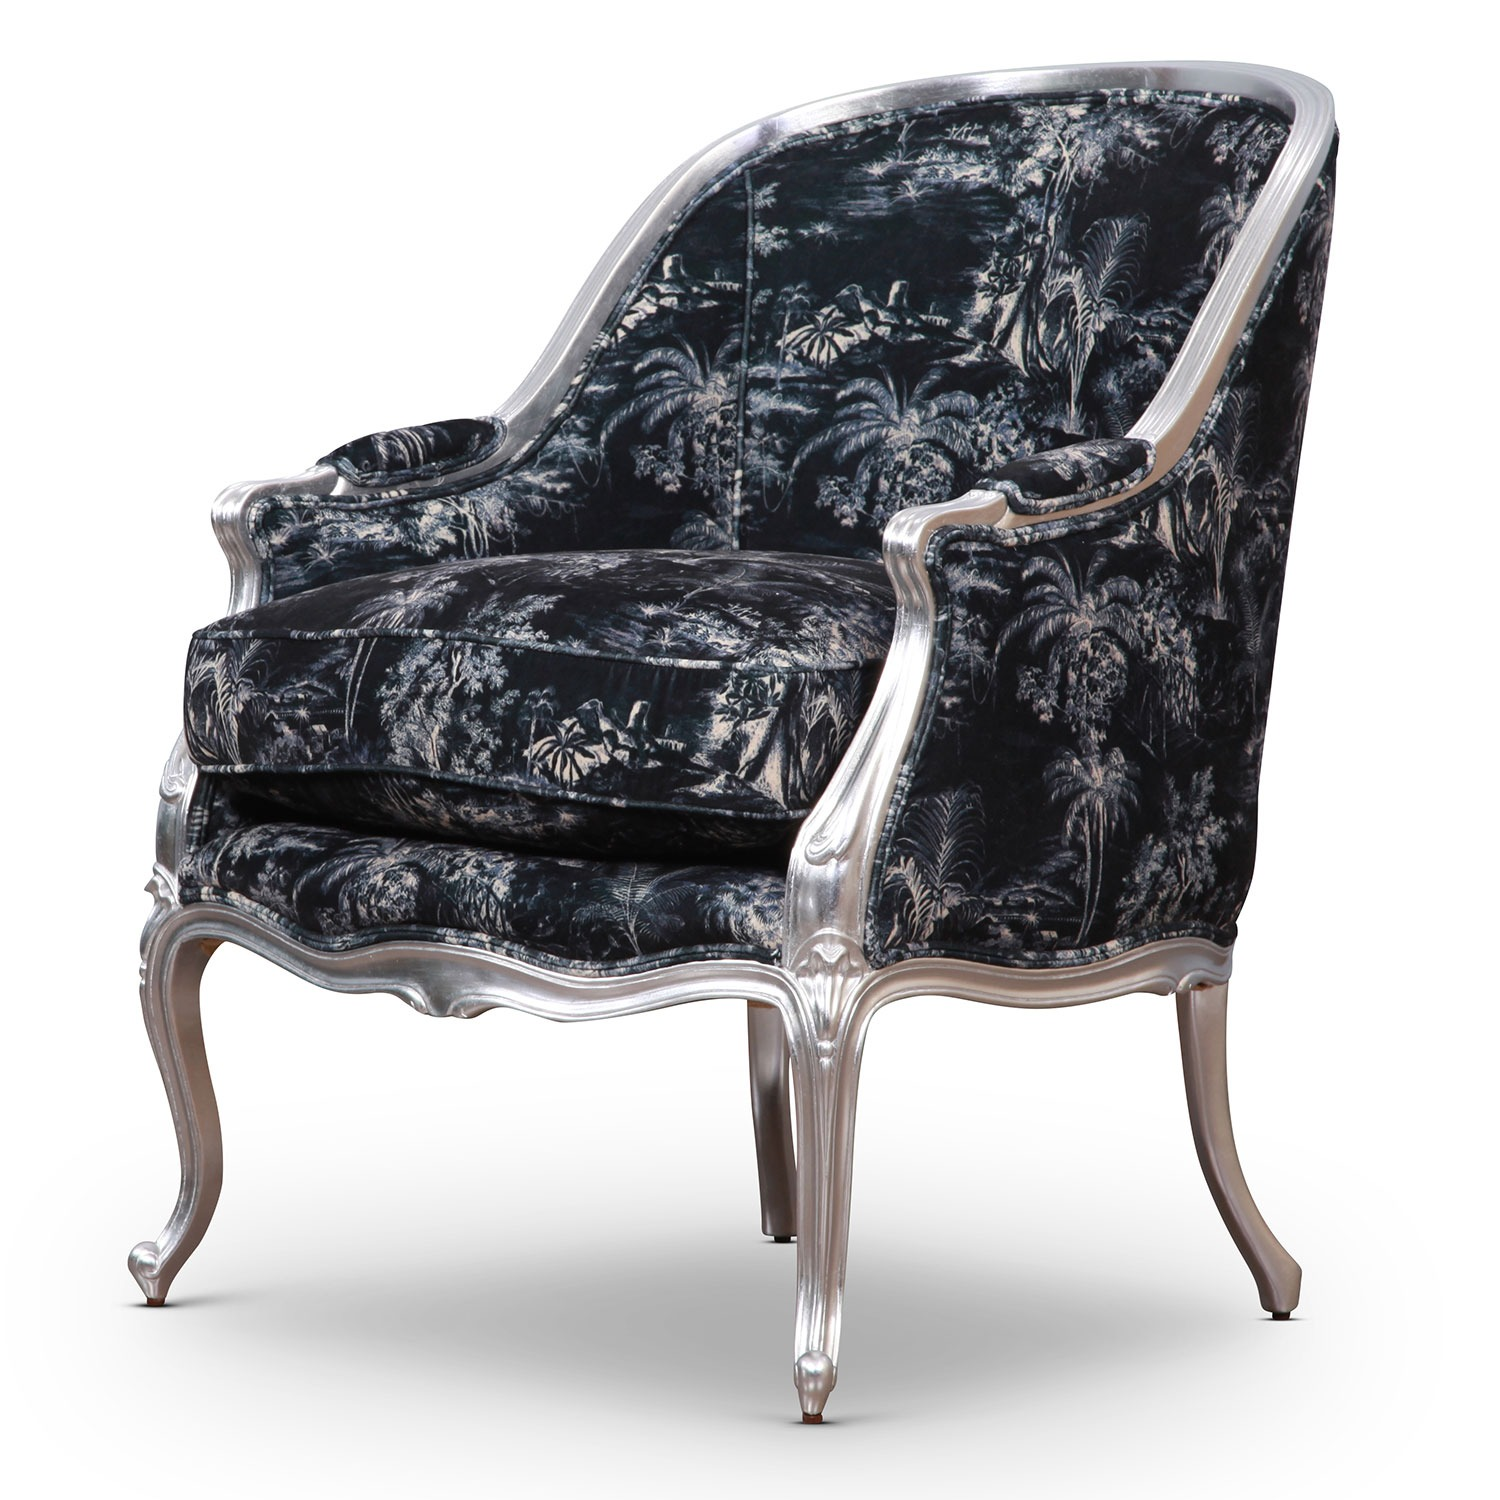 Hepplewhite tub accent chair in silver leaf